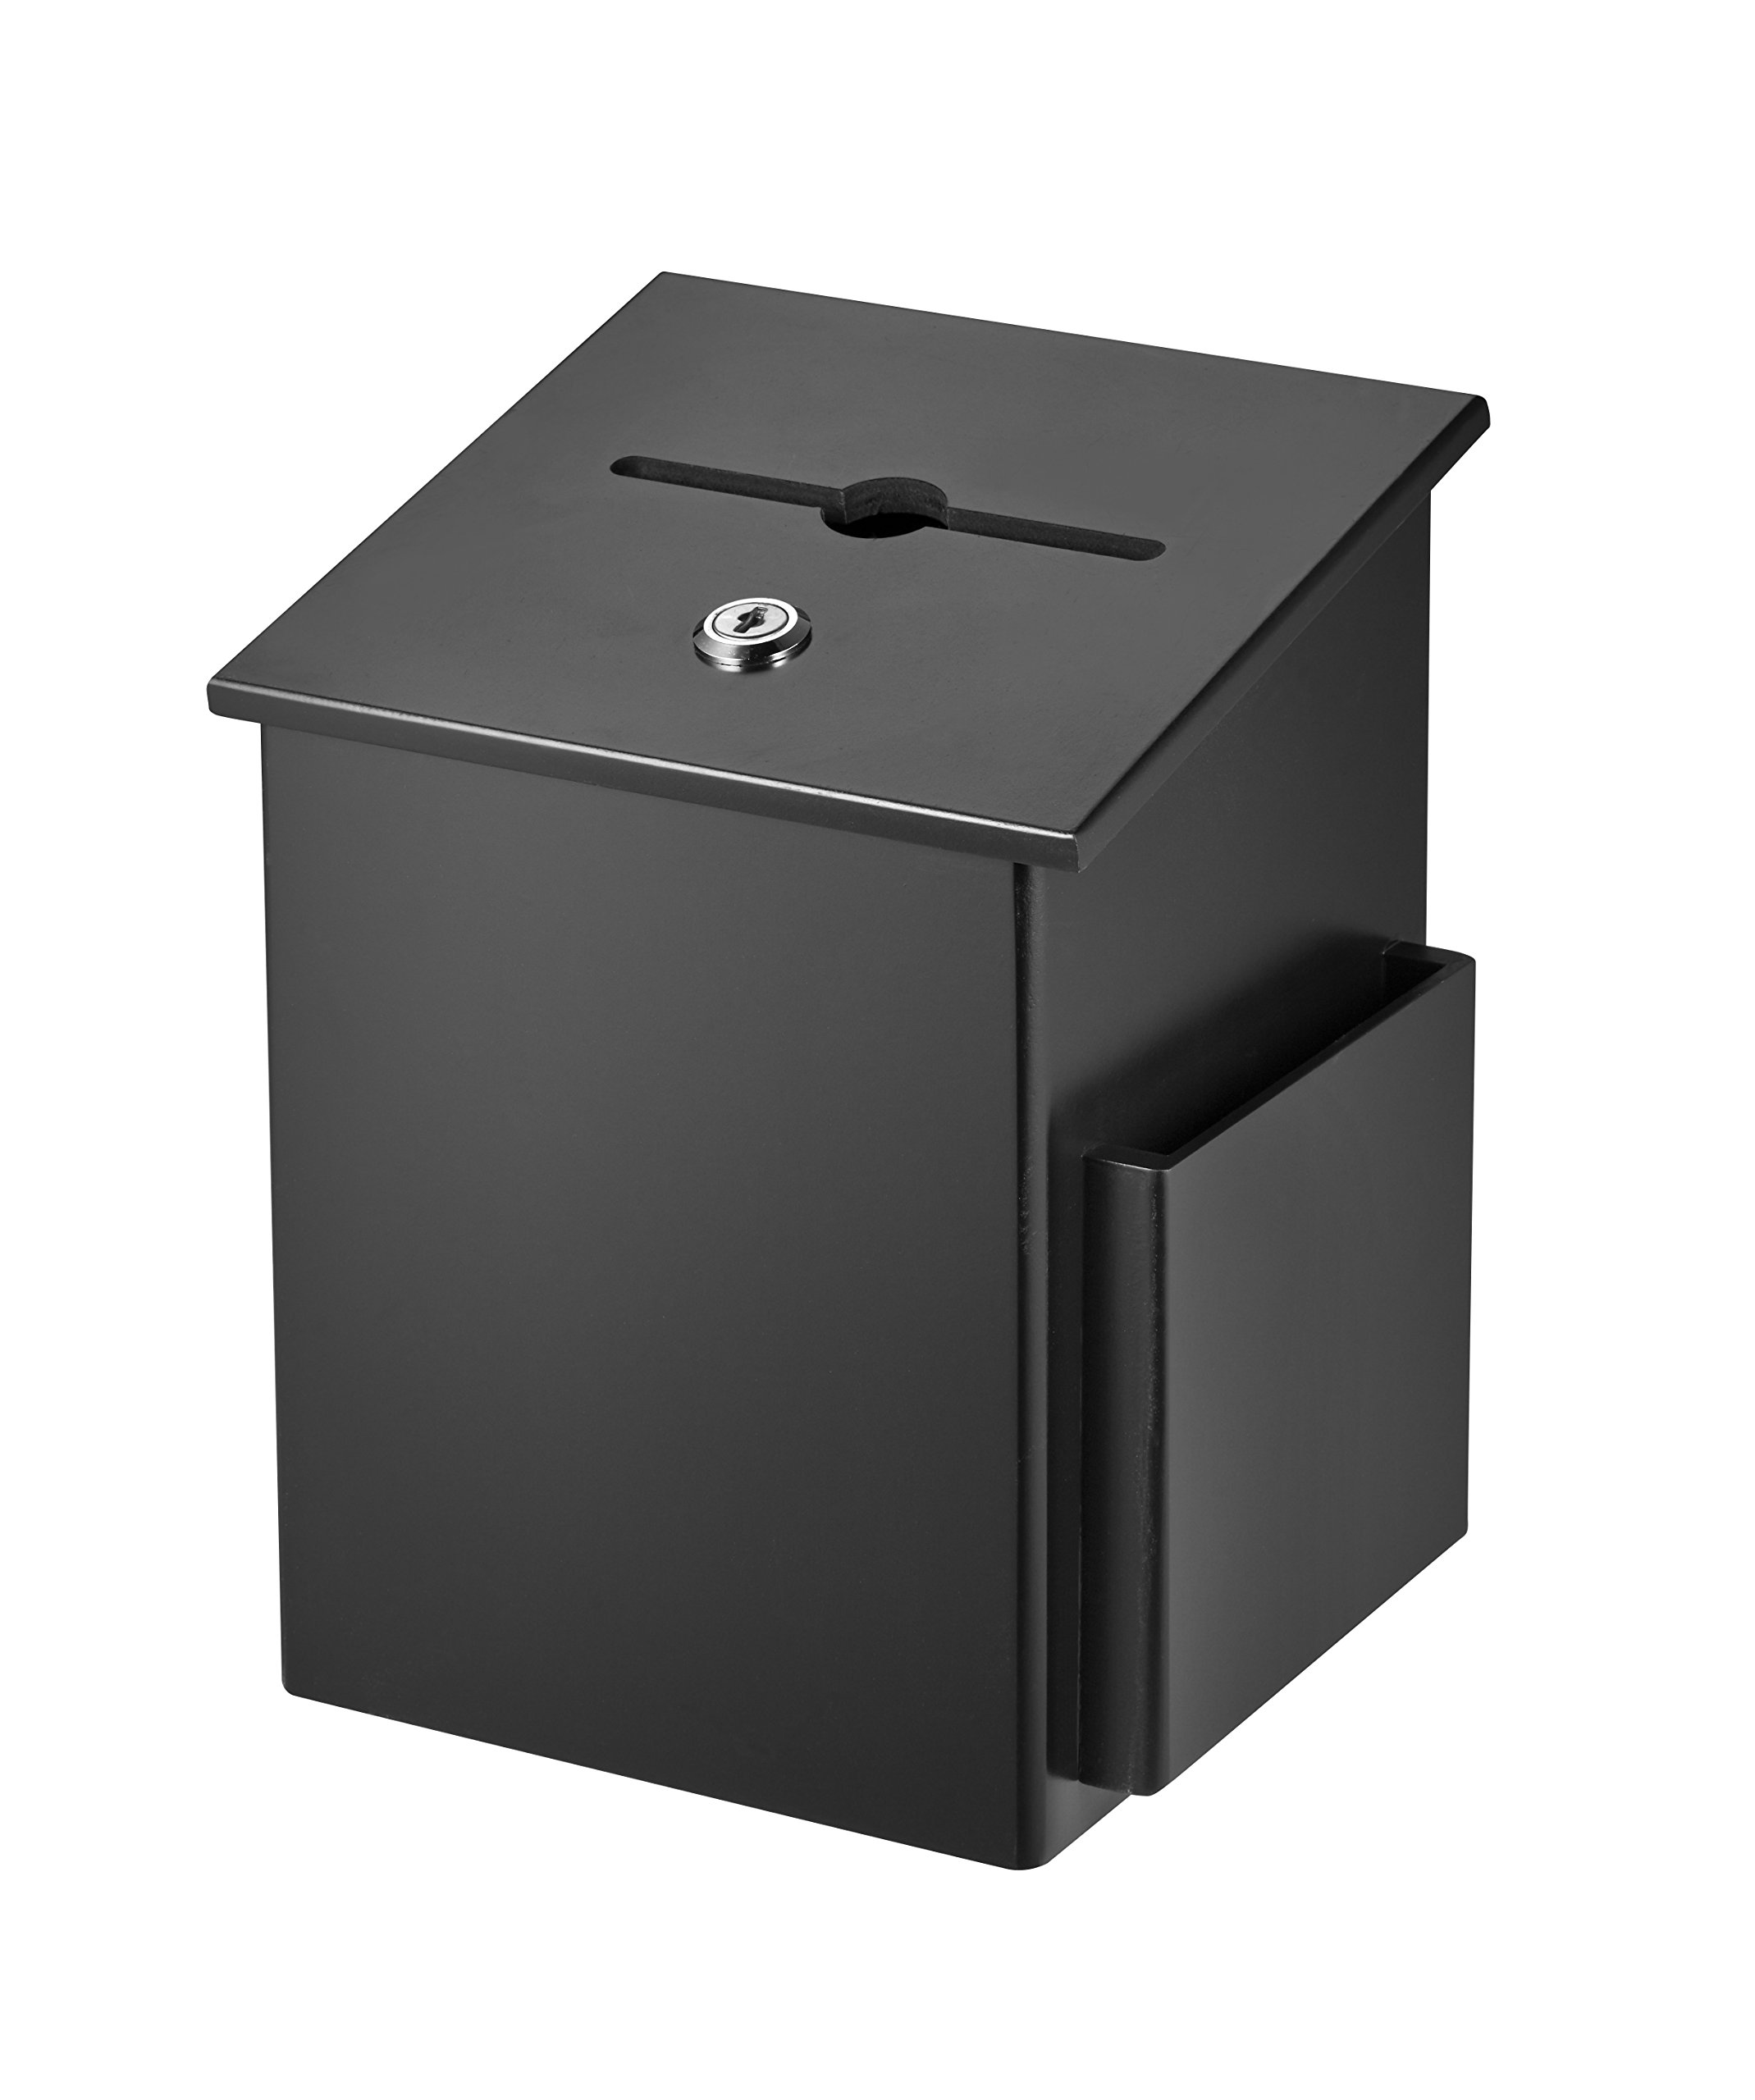 AdirOffice Square Wood Suggestion Box - Wall Mountable - with Lock & Chained Pen - Donation, Collection, Ballot, Key Drop, (Black) by AdirOffice